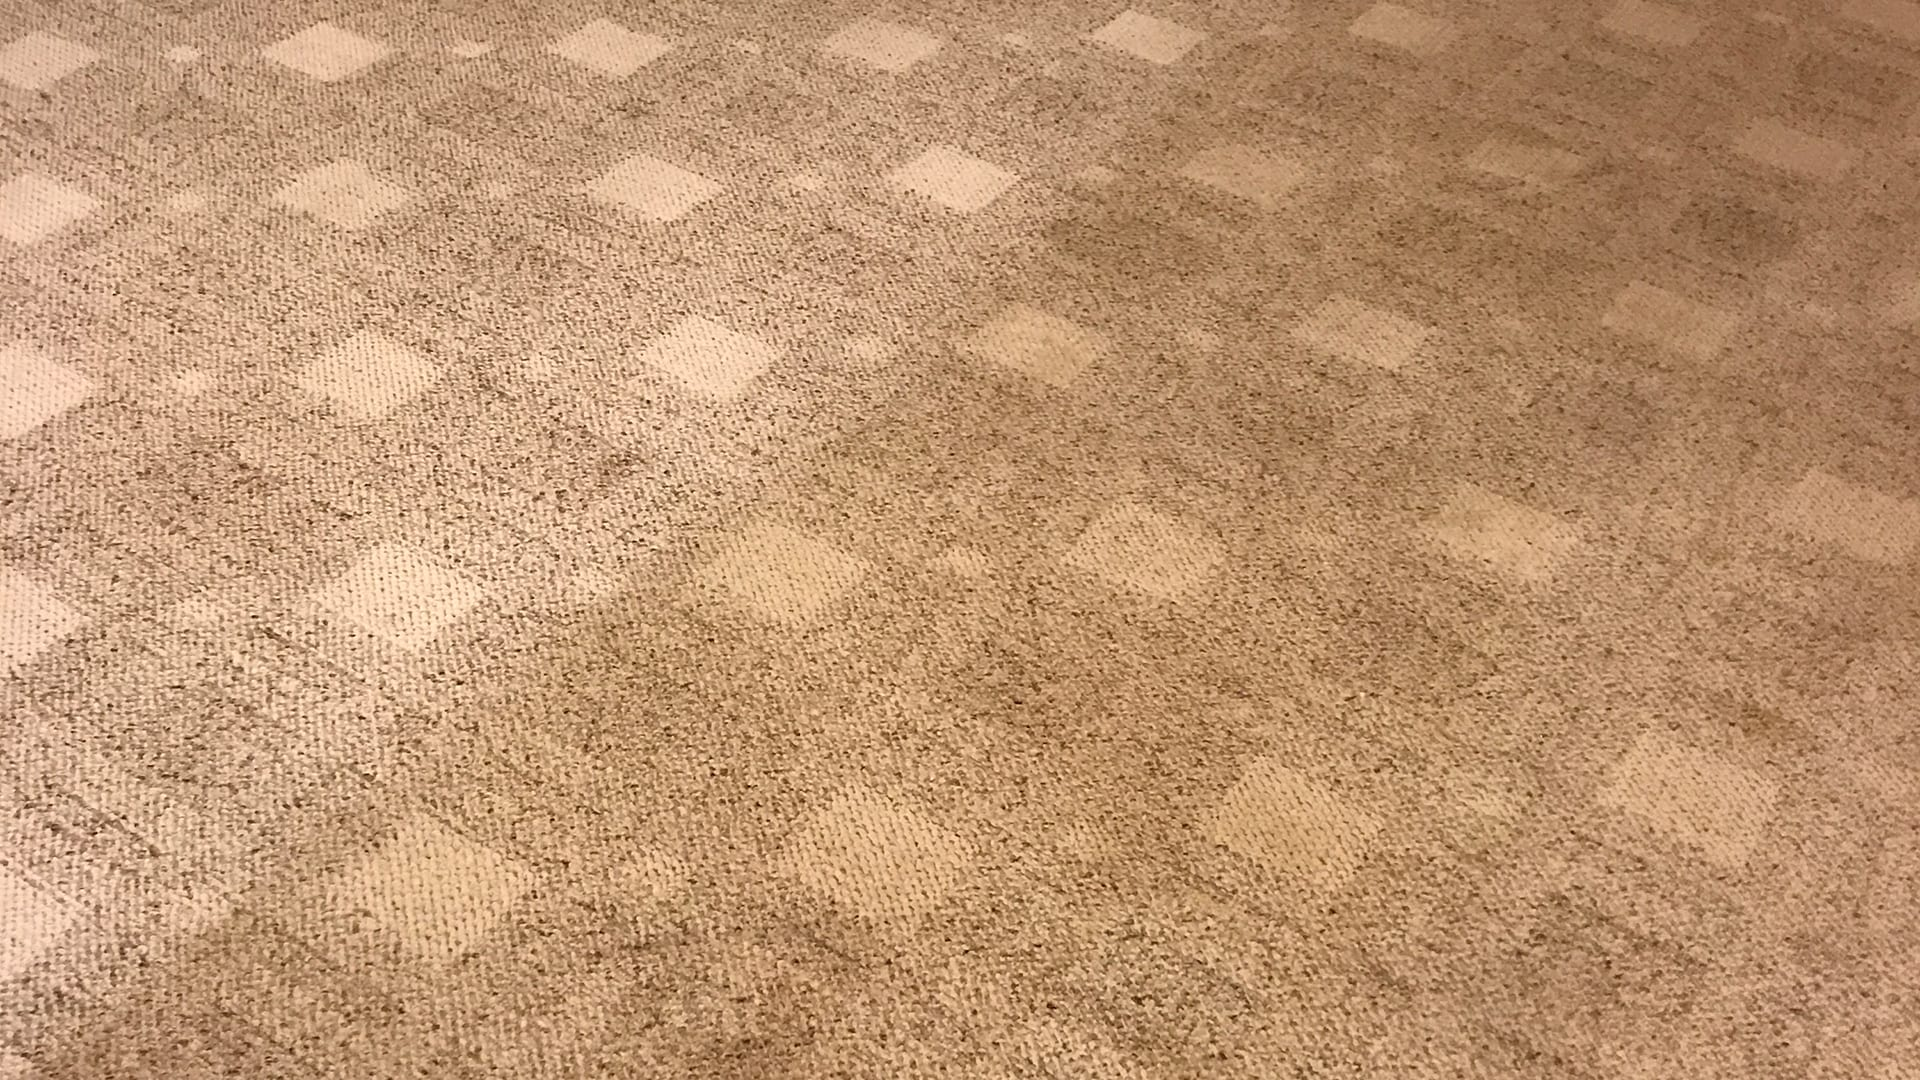 Carpet after cleaning process